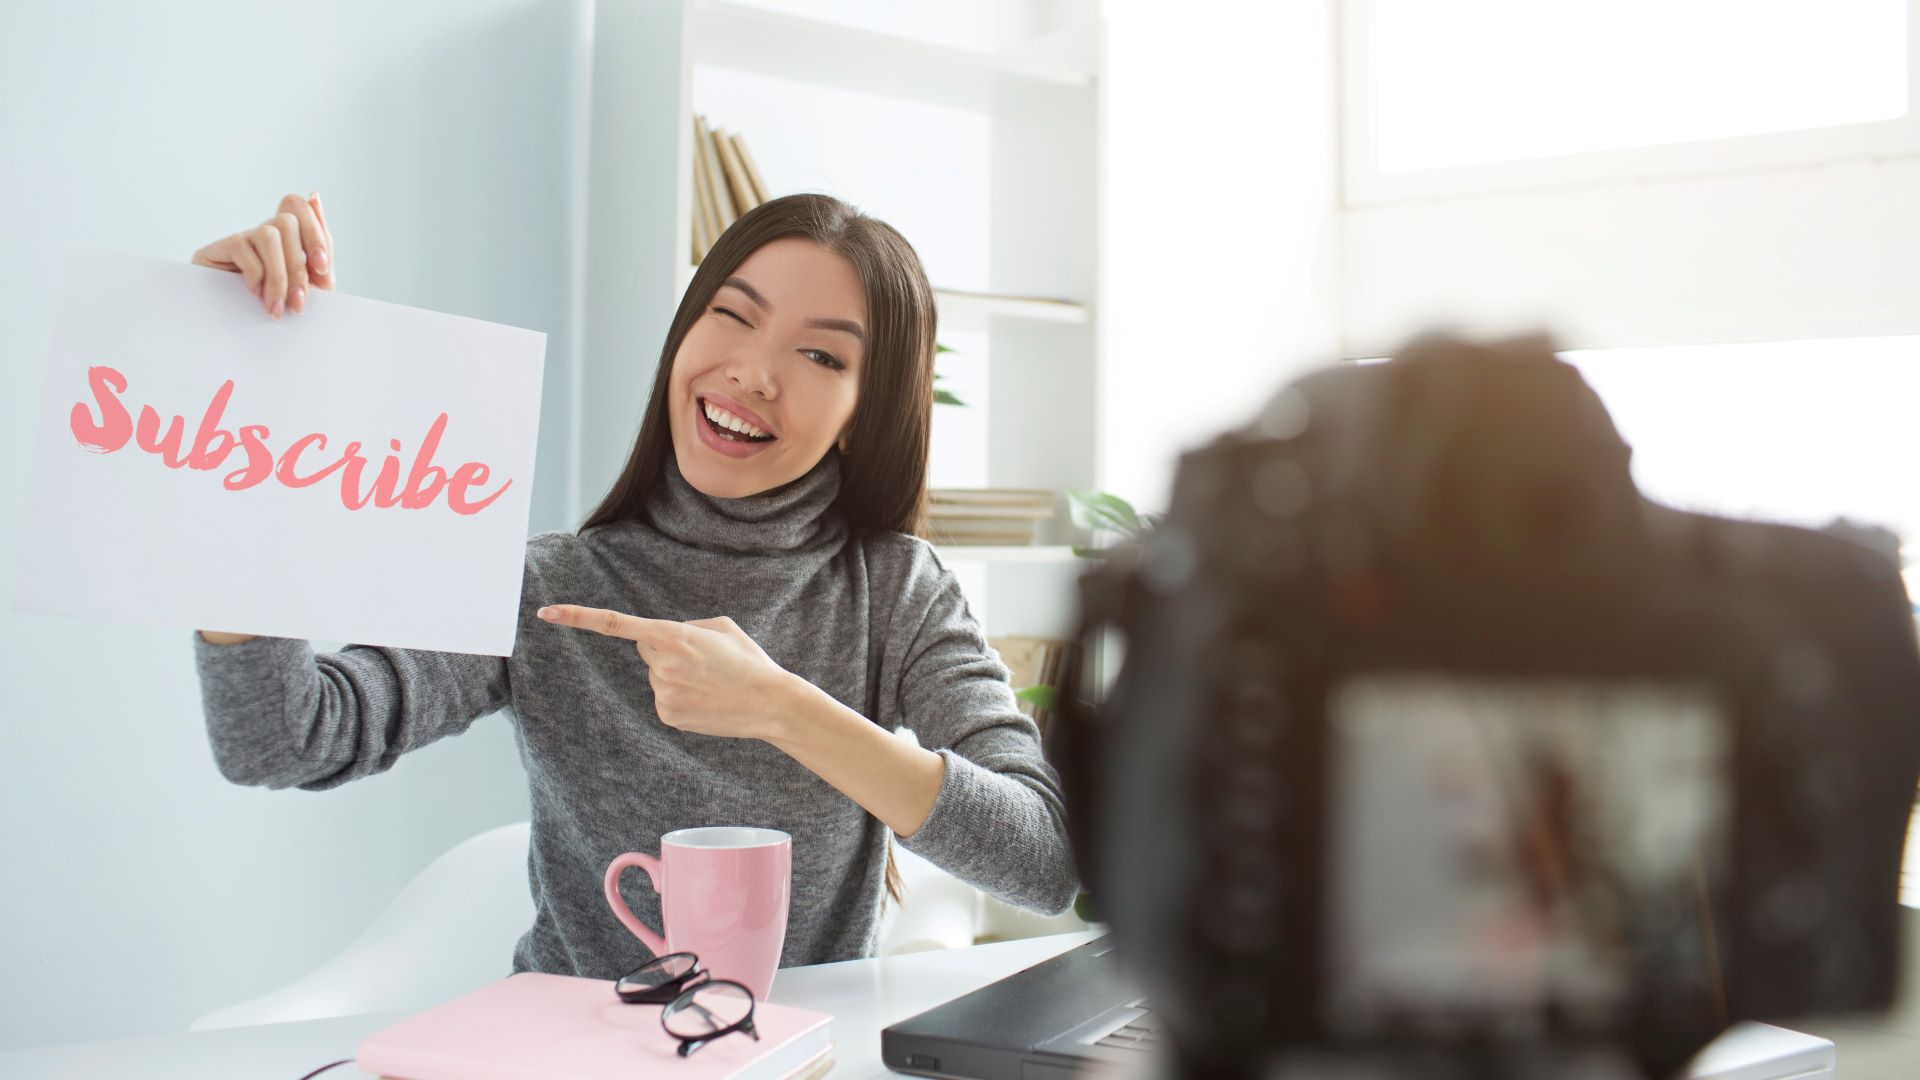 Youtube vlogger strategically marketing to viewers and asking them to subscribe